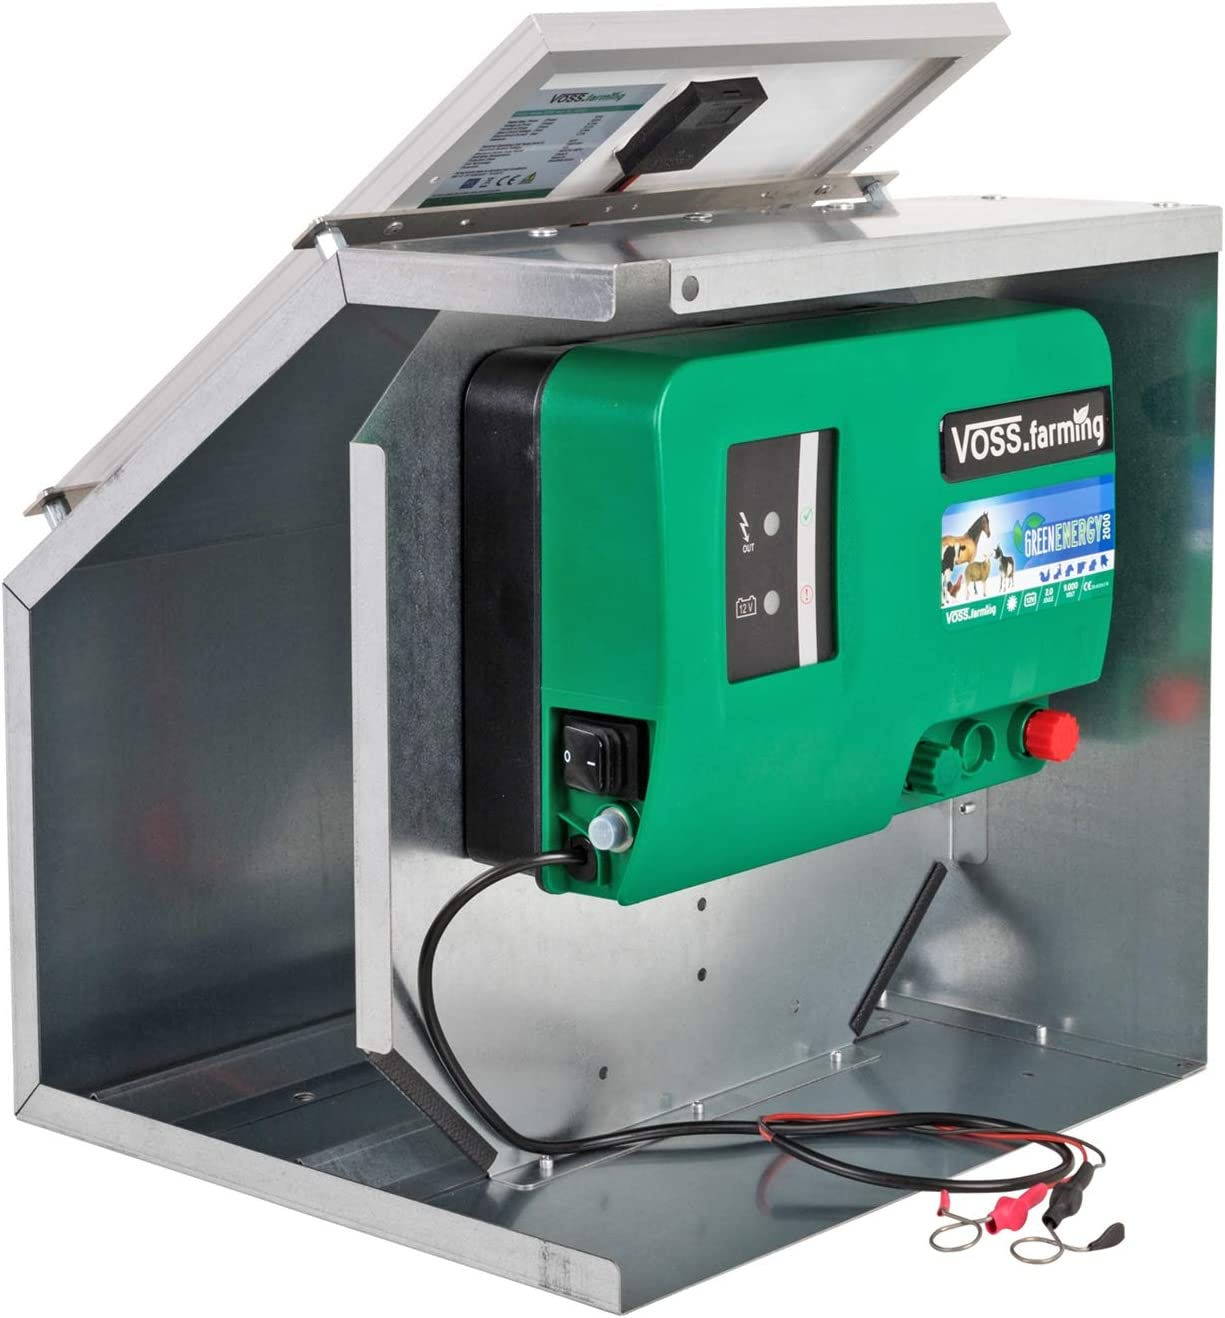 VOSS.farming Solar System: 12V Electric Fence Battery Energiser 2 J, 11000 V Metal Box for Fence Systems up to 15 km + 12 W Solar Panel